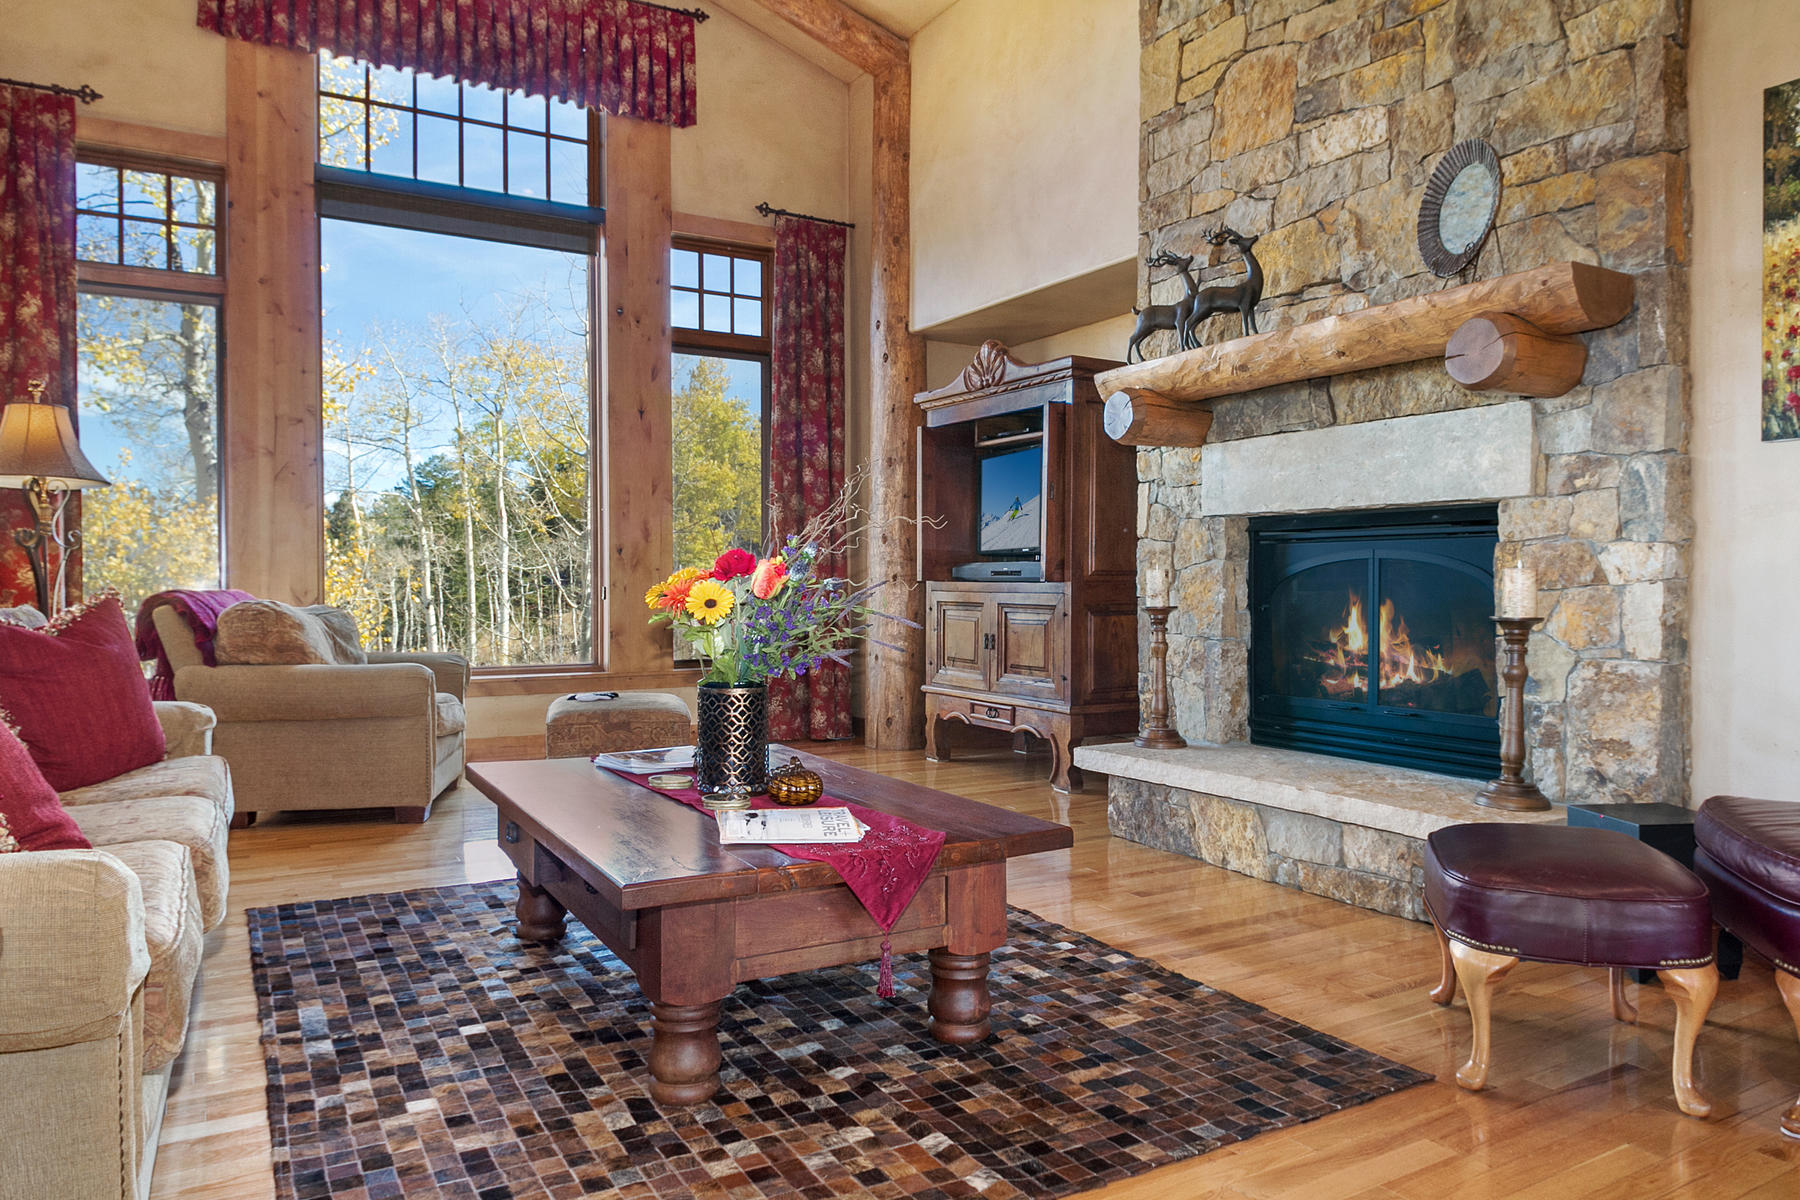 Single Family Home for Active at Cordillera Summit view with three master suites 21 Pommel Place Edwards, Colorado 81632 United States